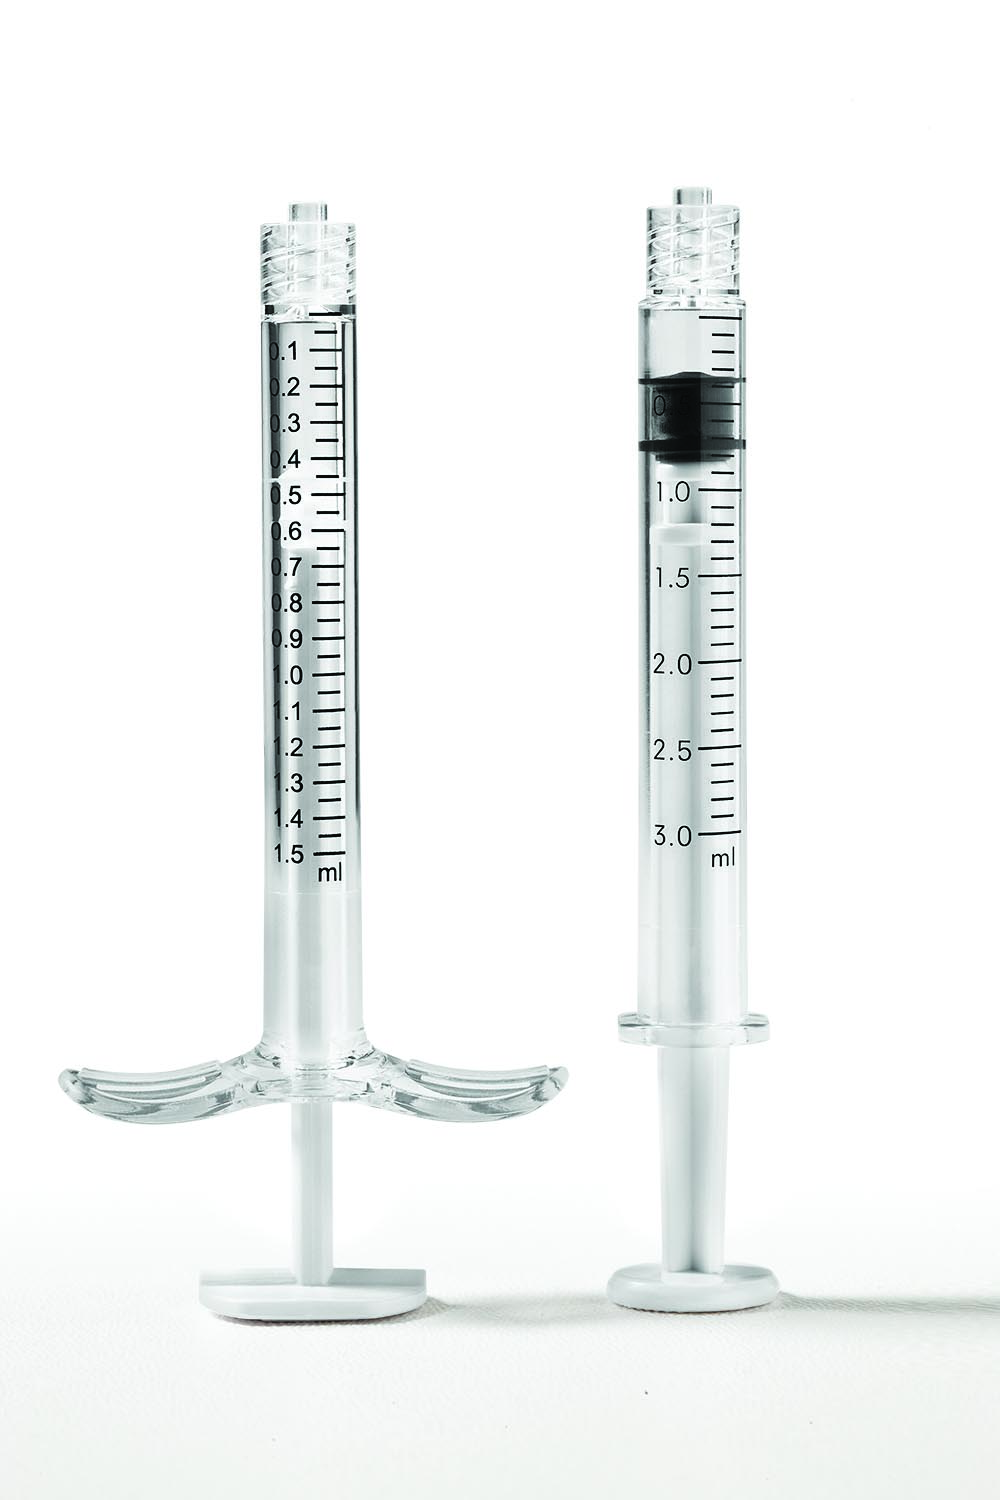 Equinox glass replacement prefillable COC and COP syringes:  1.5ml and 3.0ml